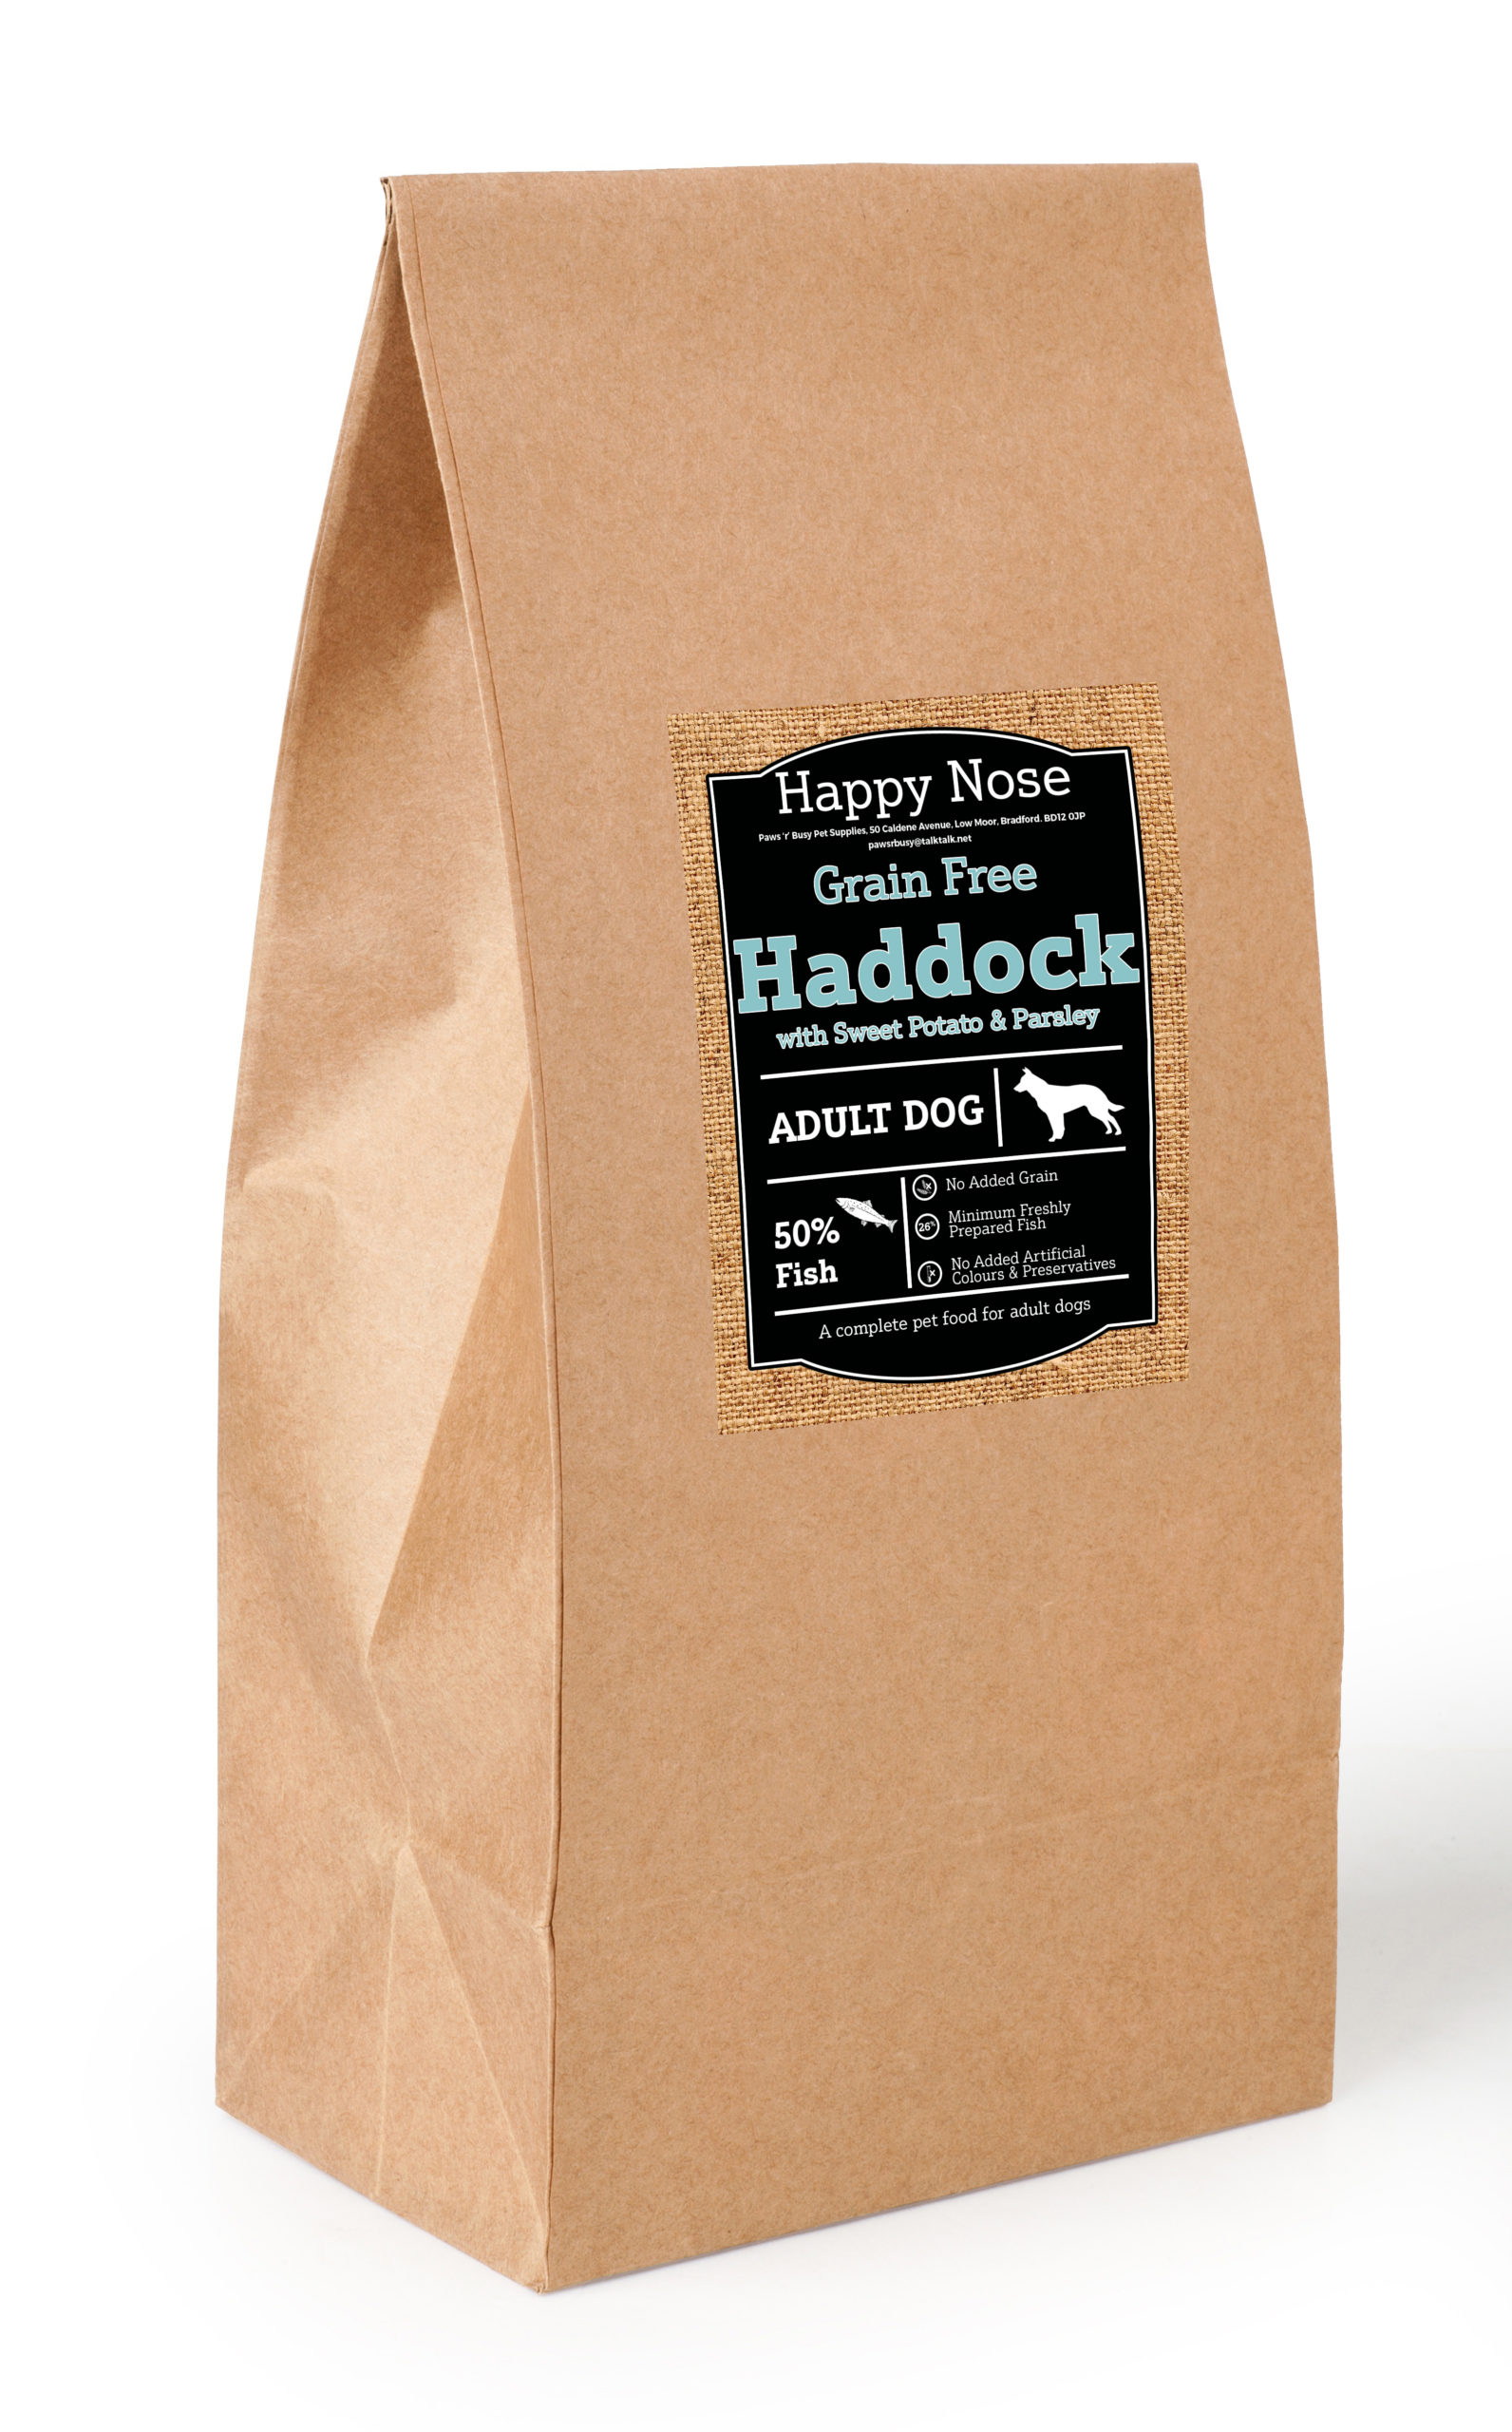 Haddock, Sweet Potato & Parsley Adult Dog Food